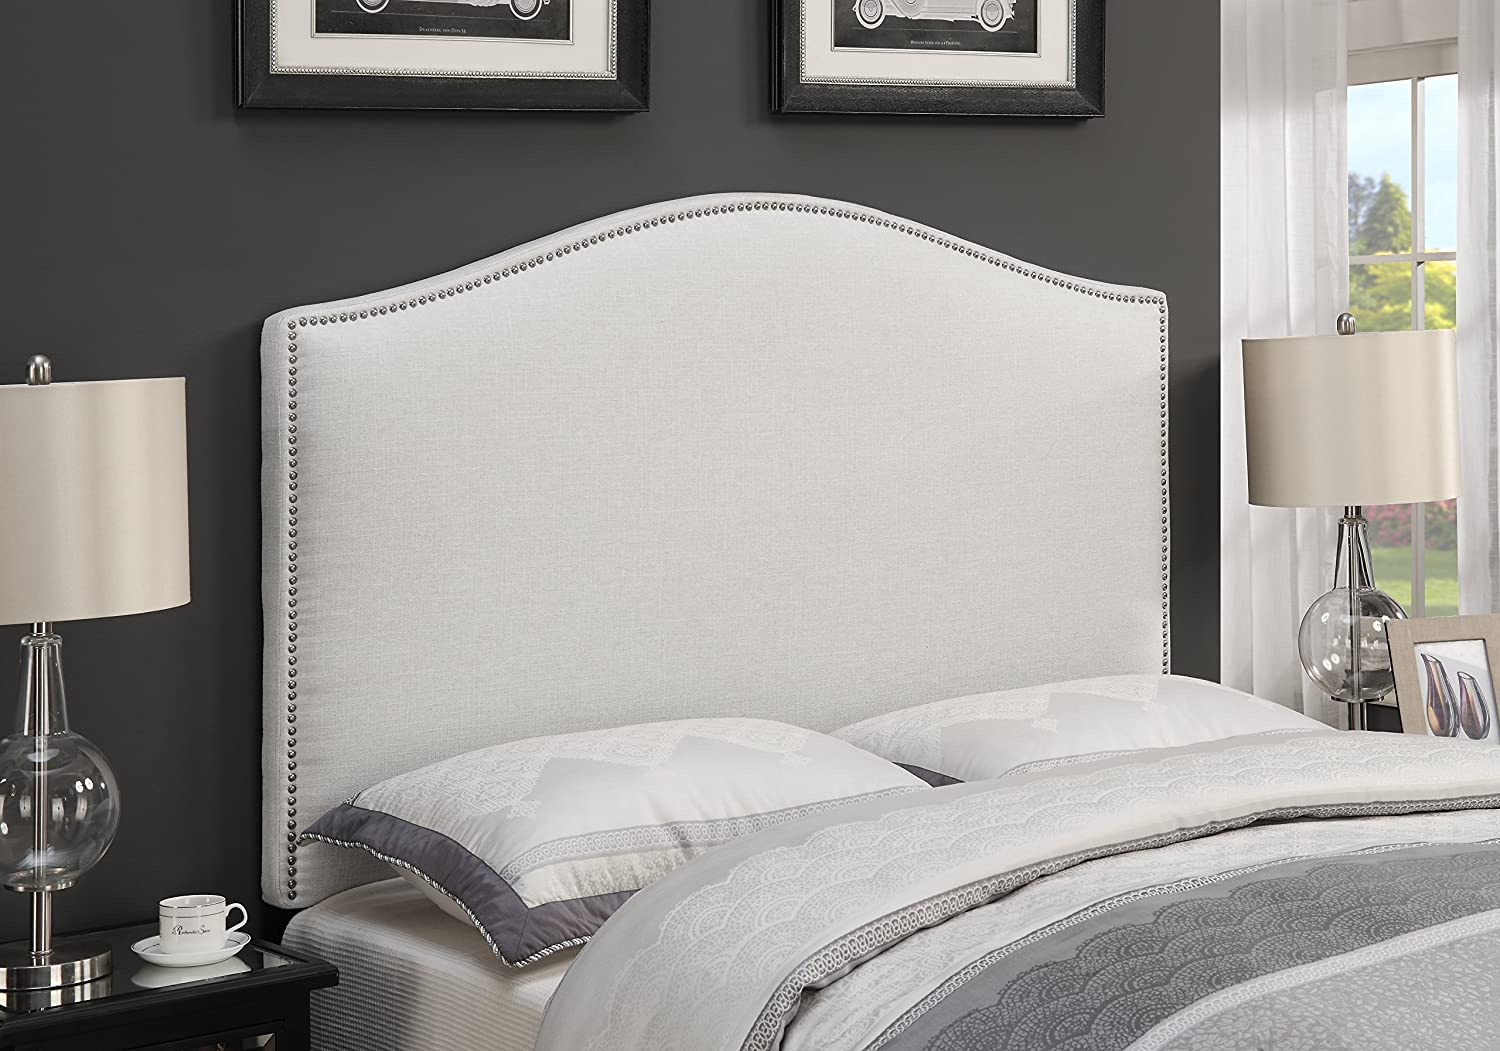 Charlotte Mall Right2Home King Size Upholstered Max 82% OFF Headboard Divan White